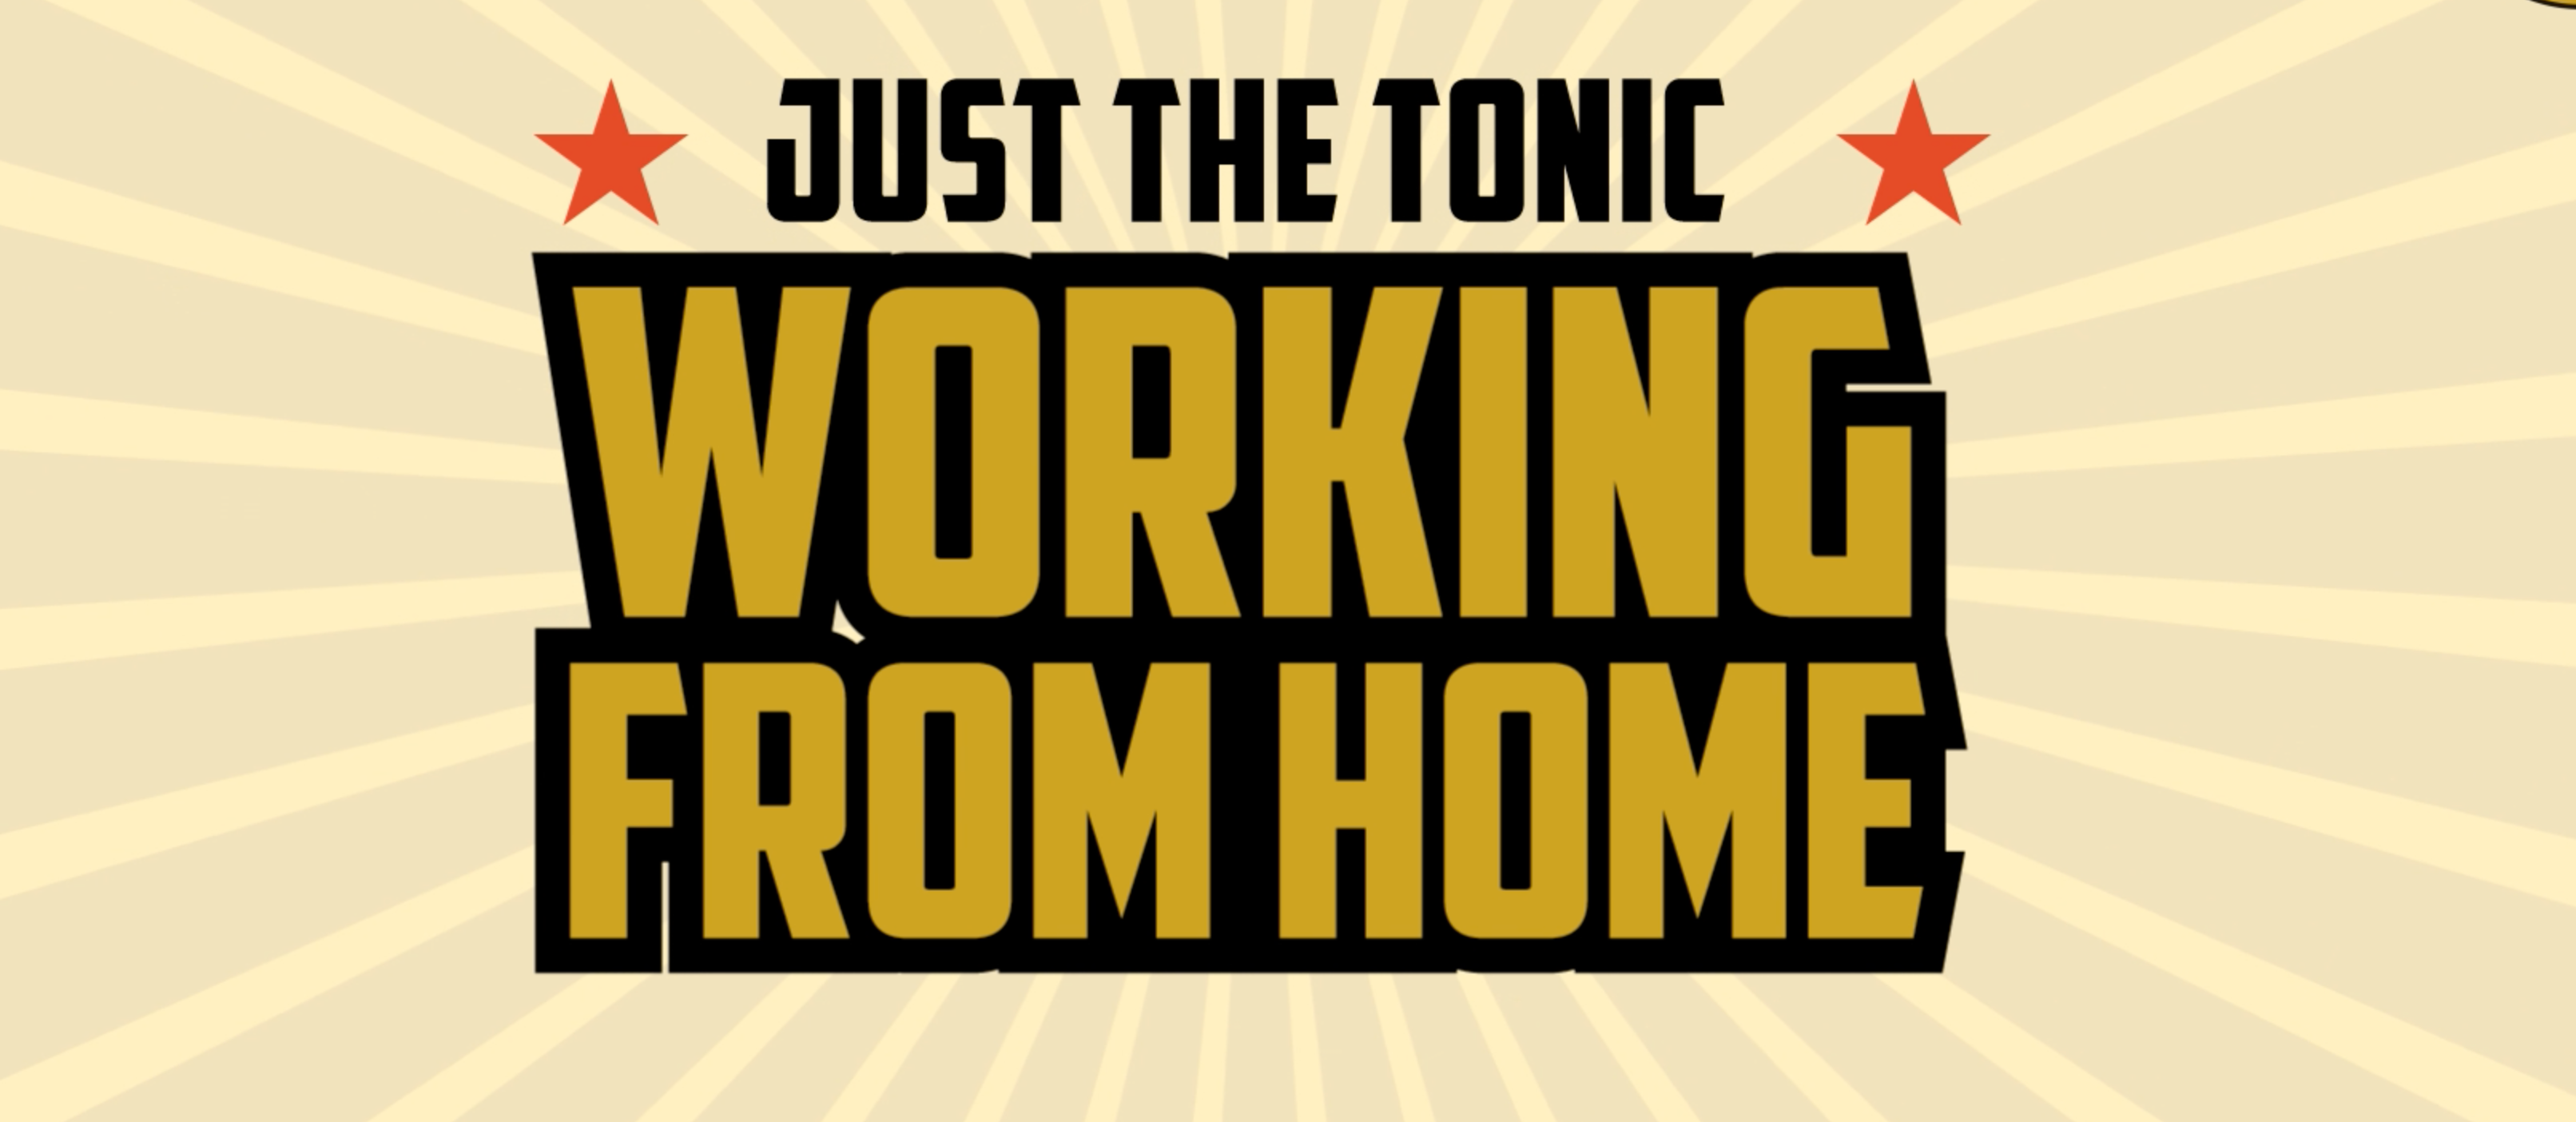 Just the Tonic Comedy Club - Working From Home - 7th Pilot